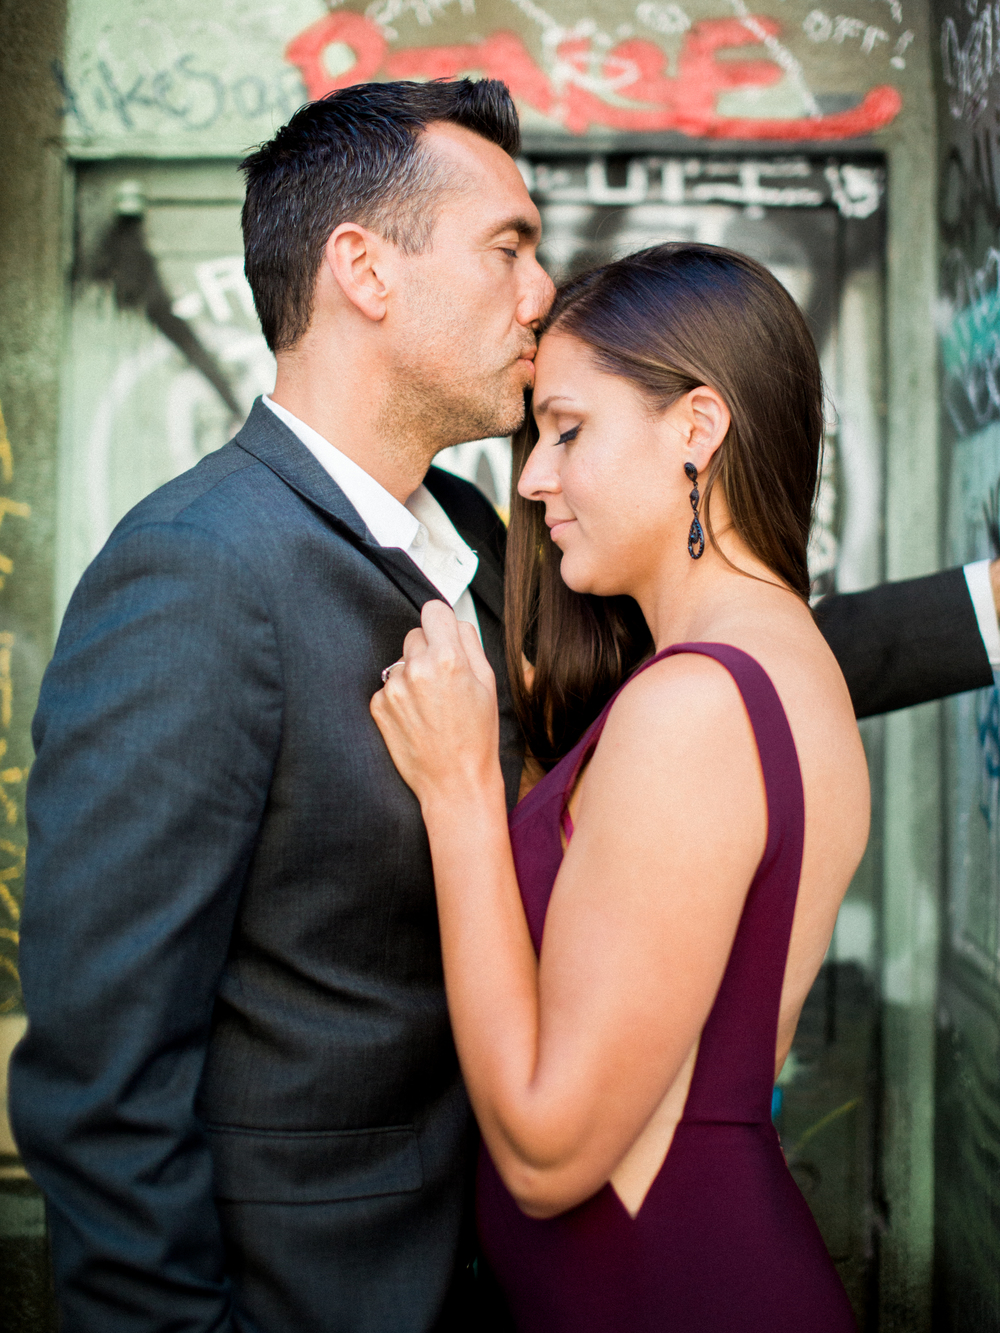 downtown_losangeles_engagement_photos_chantepaul-66.jpg